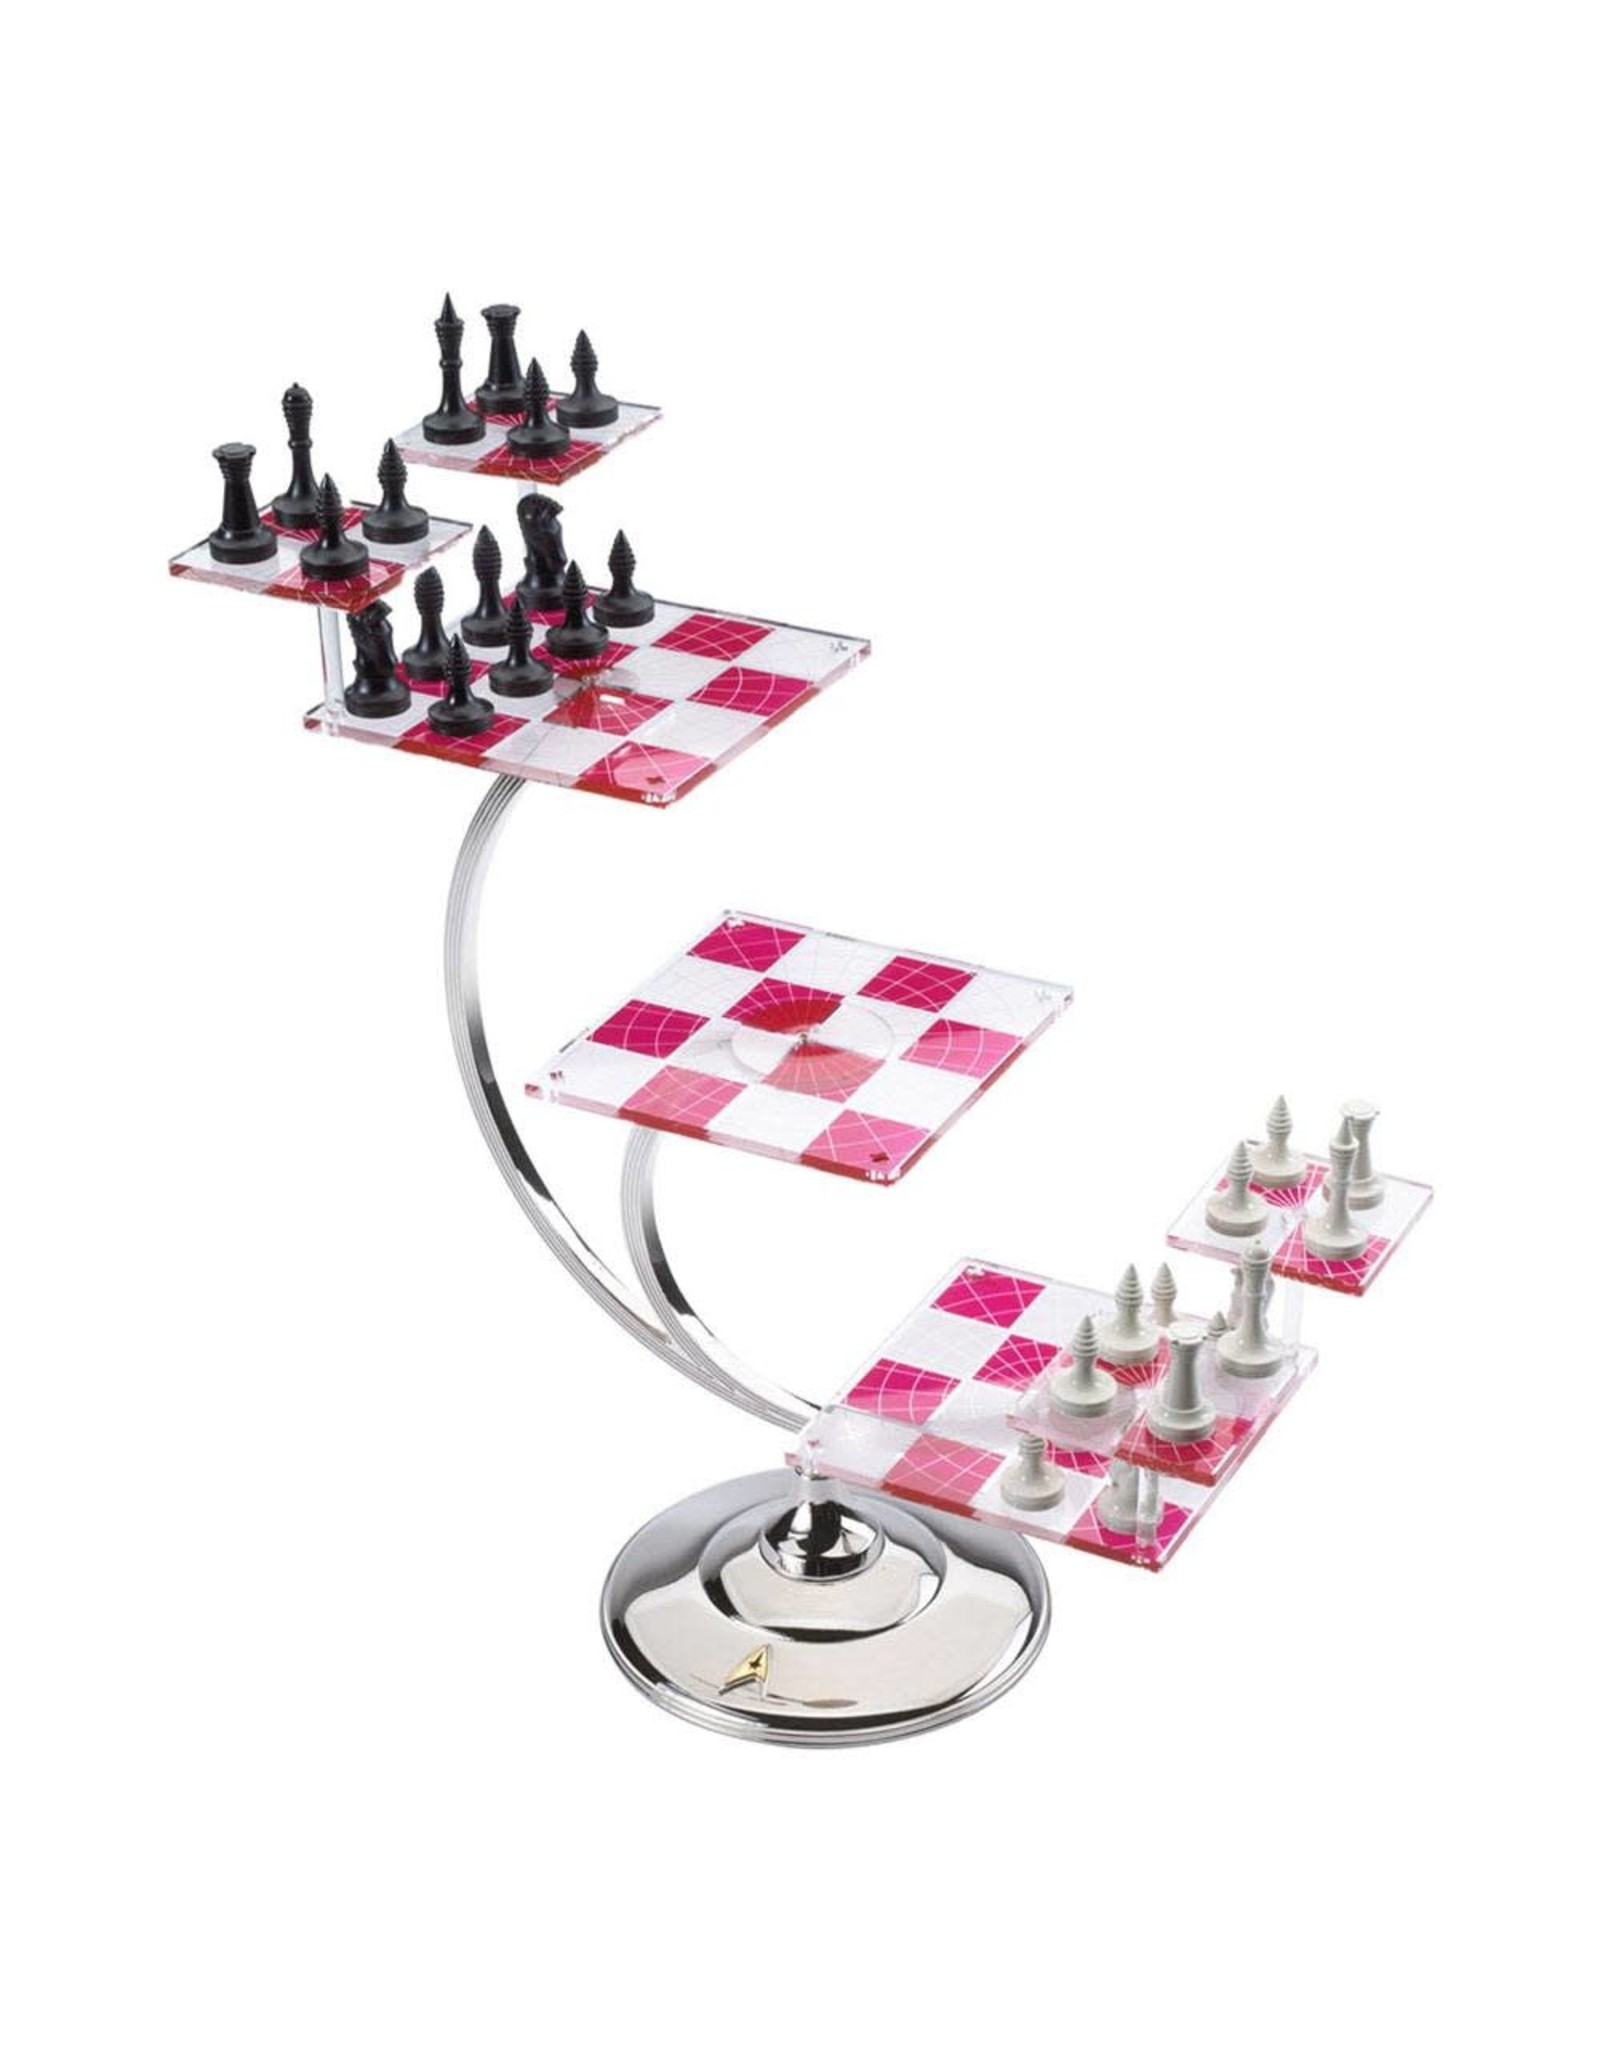 Noble Collection STAR TREK Tri-Dimensional Chess Set